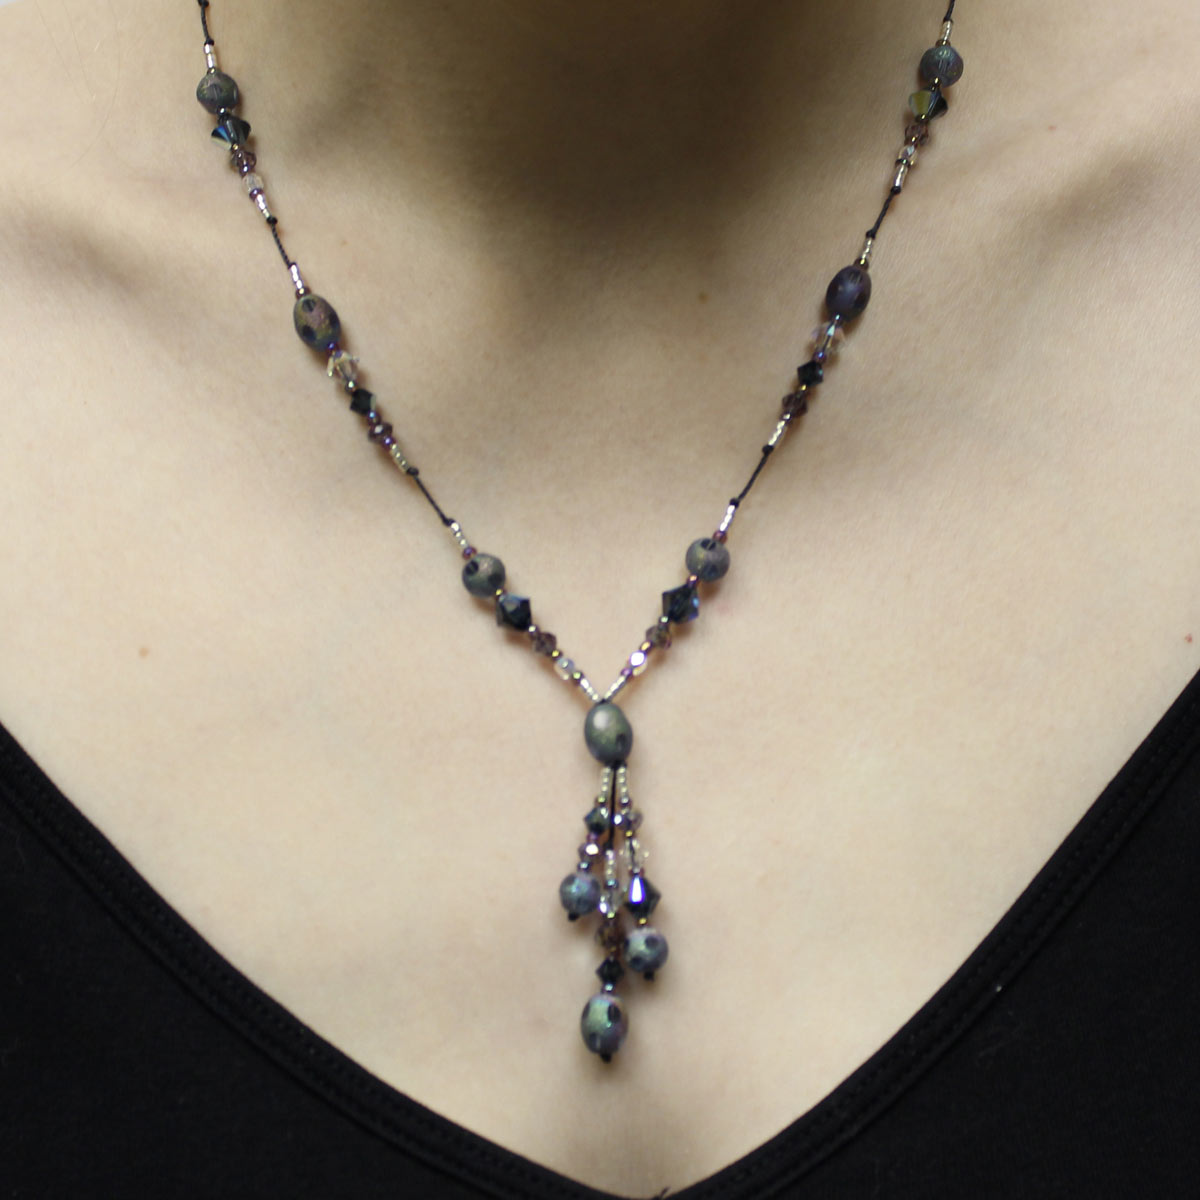 stardust beads, stardust center bead, drop necklace, amethyst crystal necklace, handmade jewelry